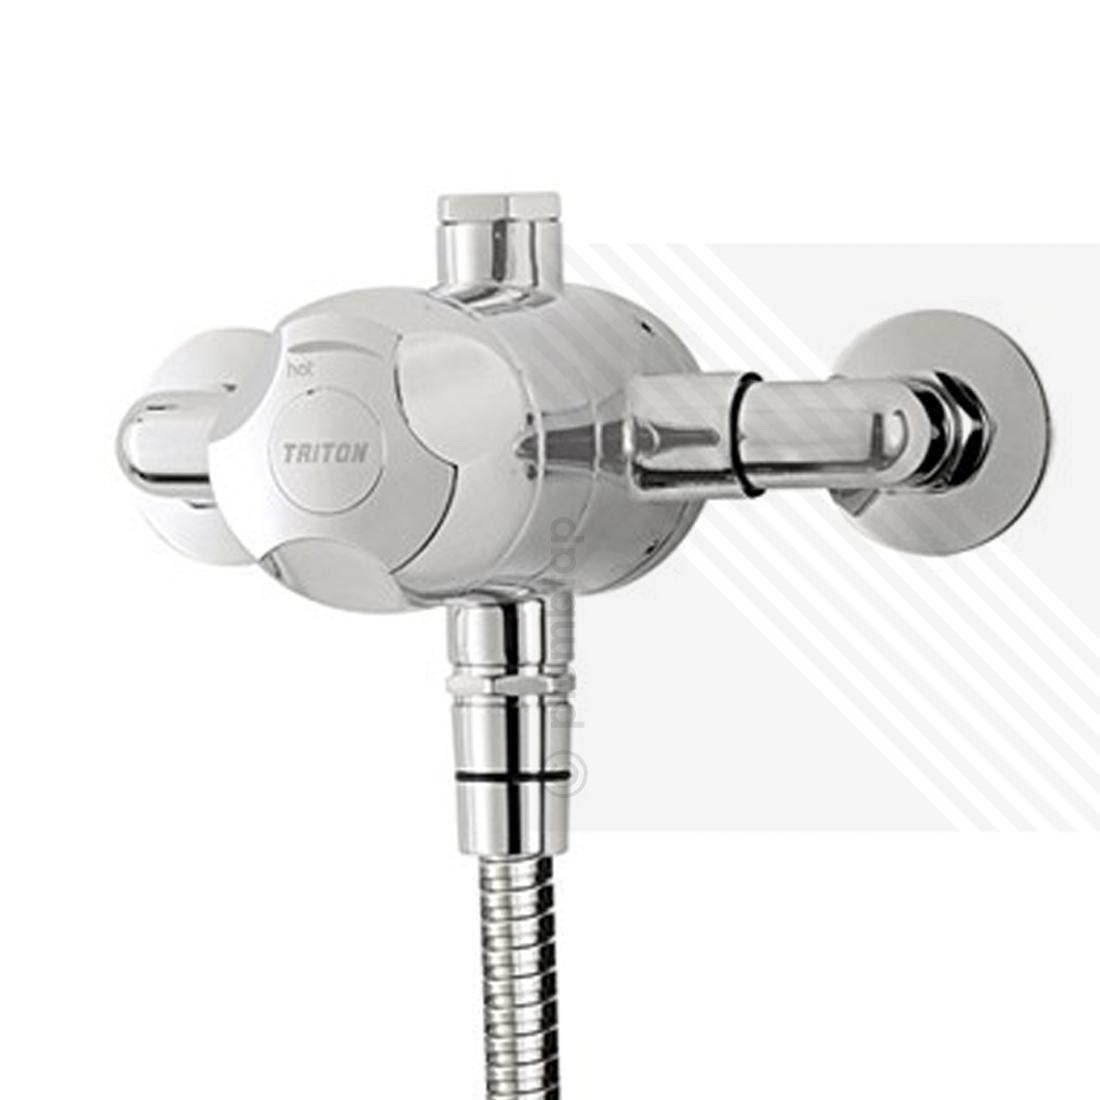 triton dove sequential exposed thermostatic shower mixer valve with handset riser rail soap dish. Black Bedroom Furniture Sets. Home Design Ideas